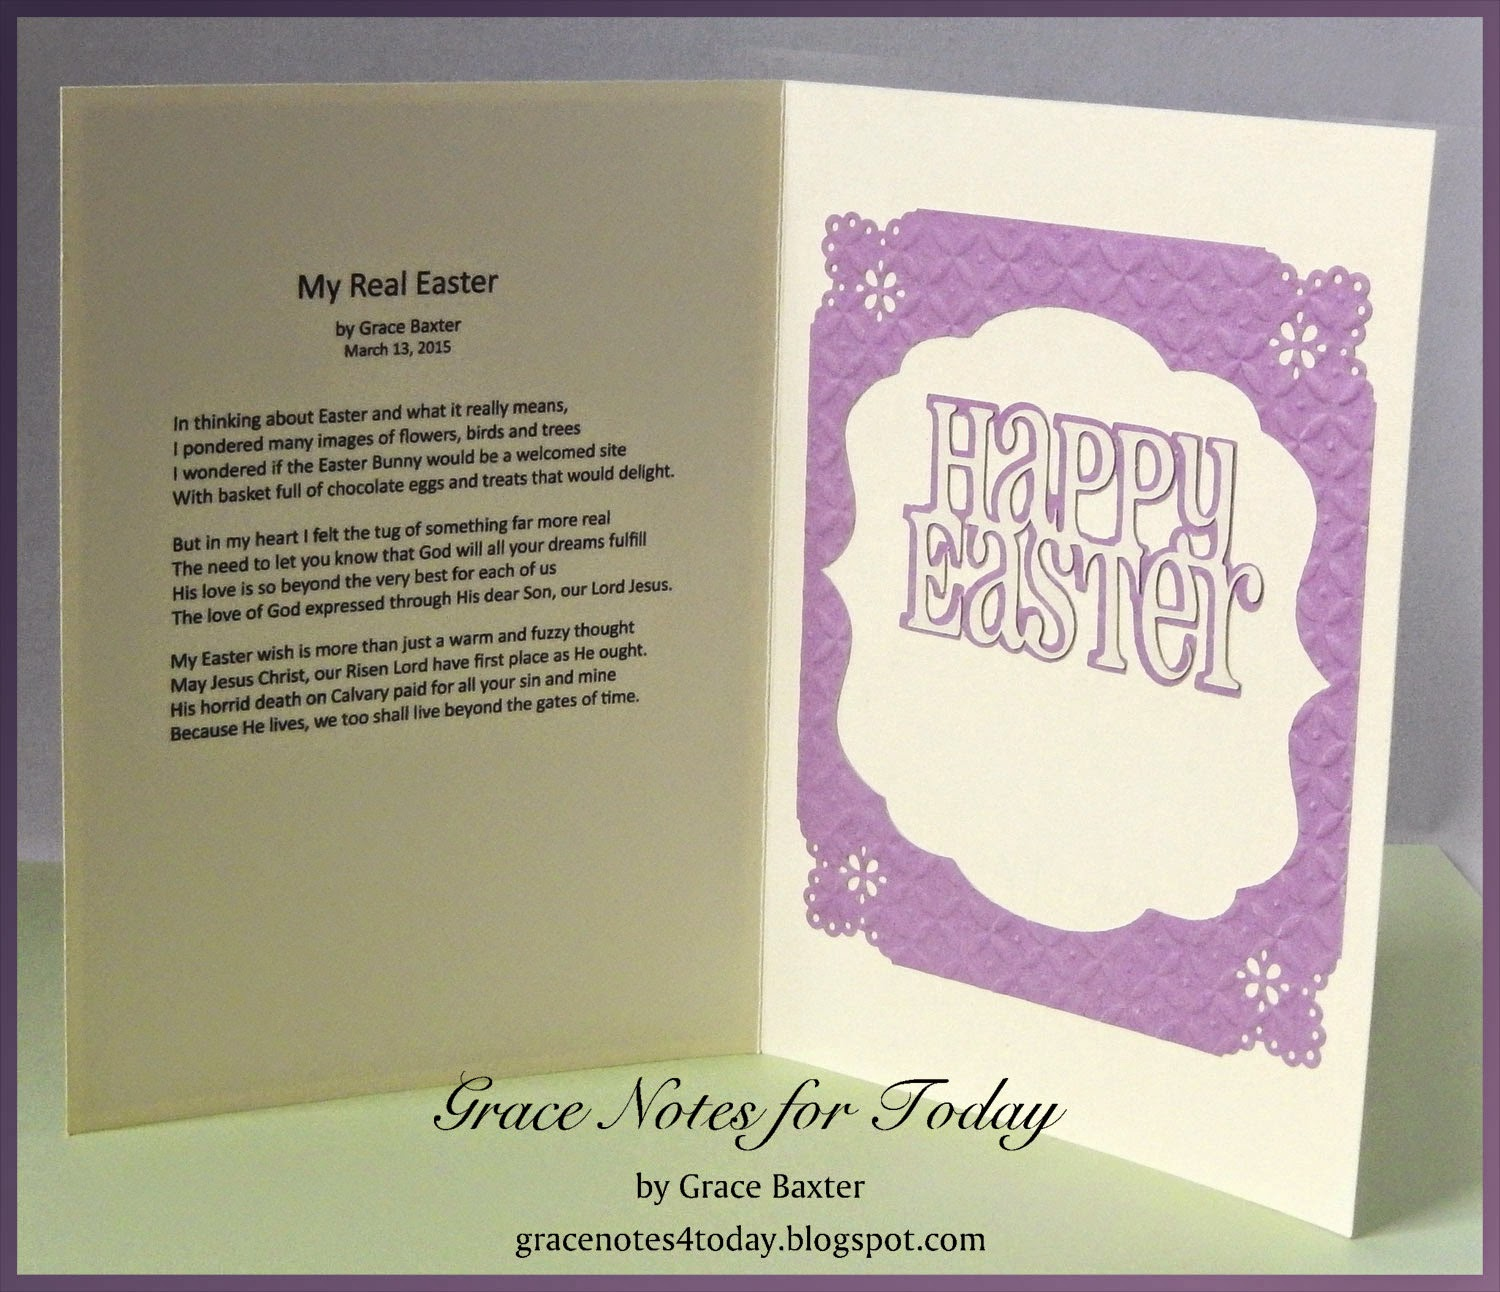 My Real Easter, card poem by Grace Baxter